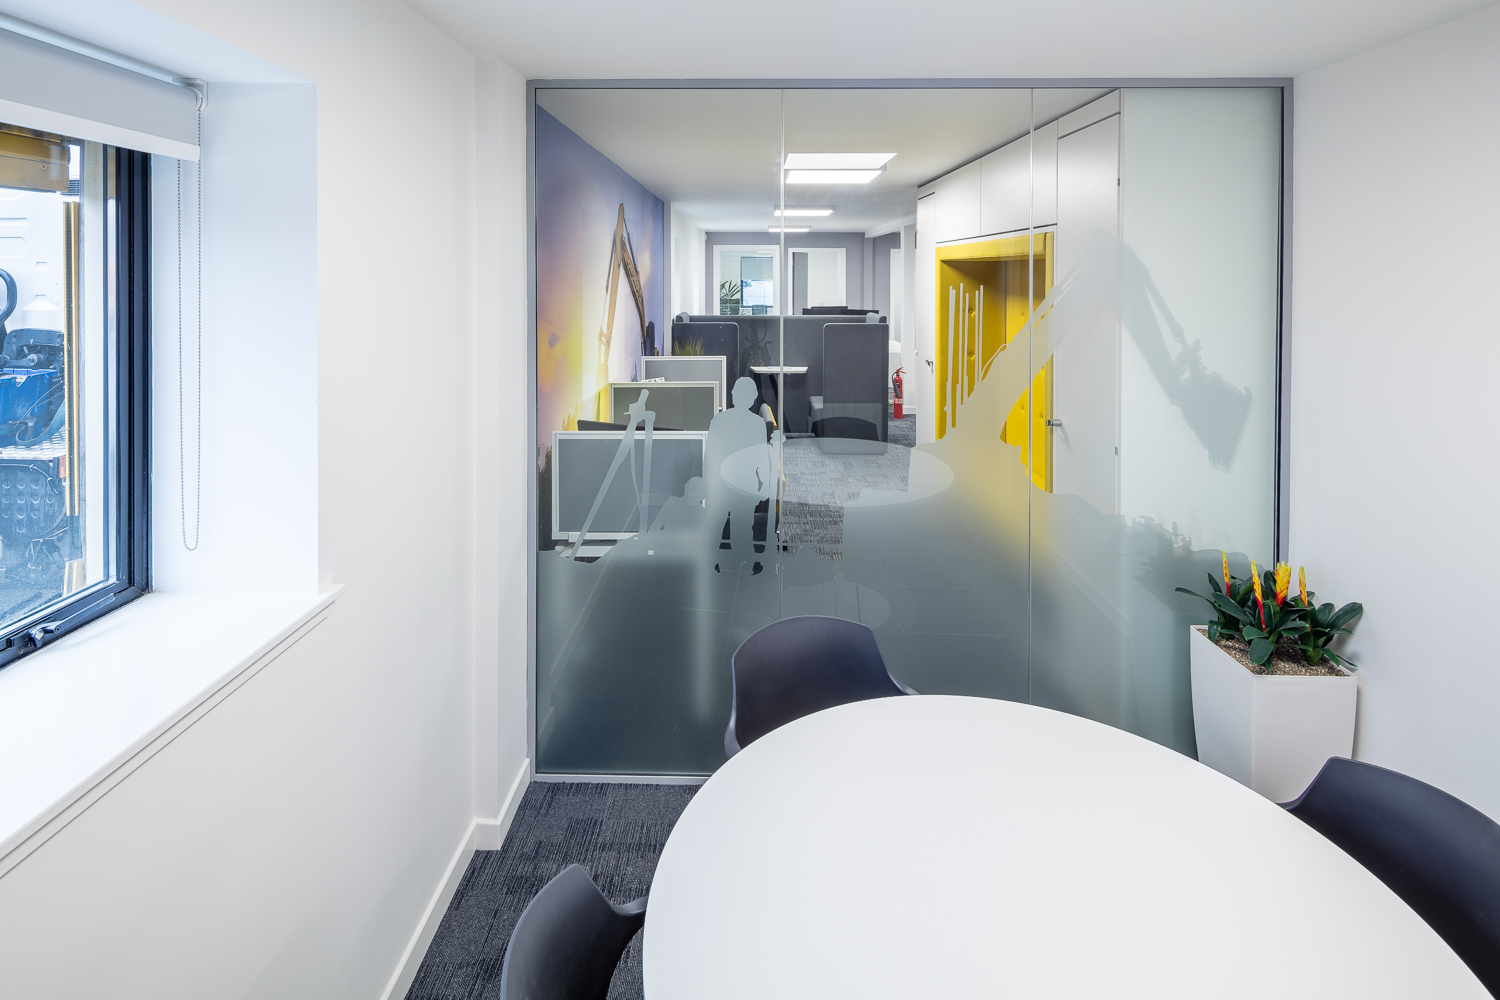 office design ideas glass wall.jpg